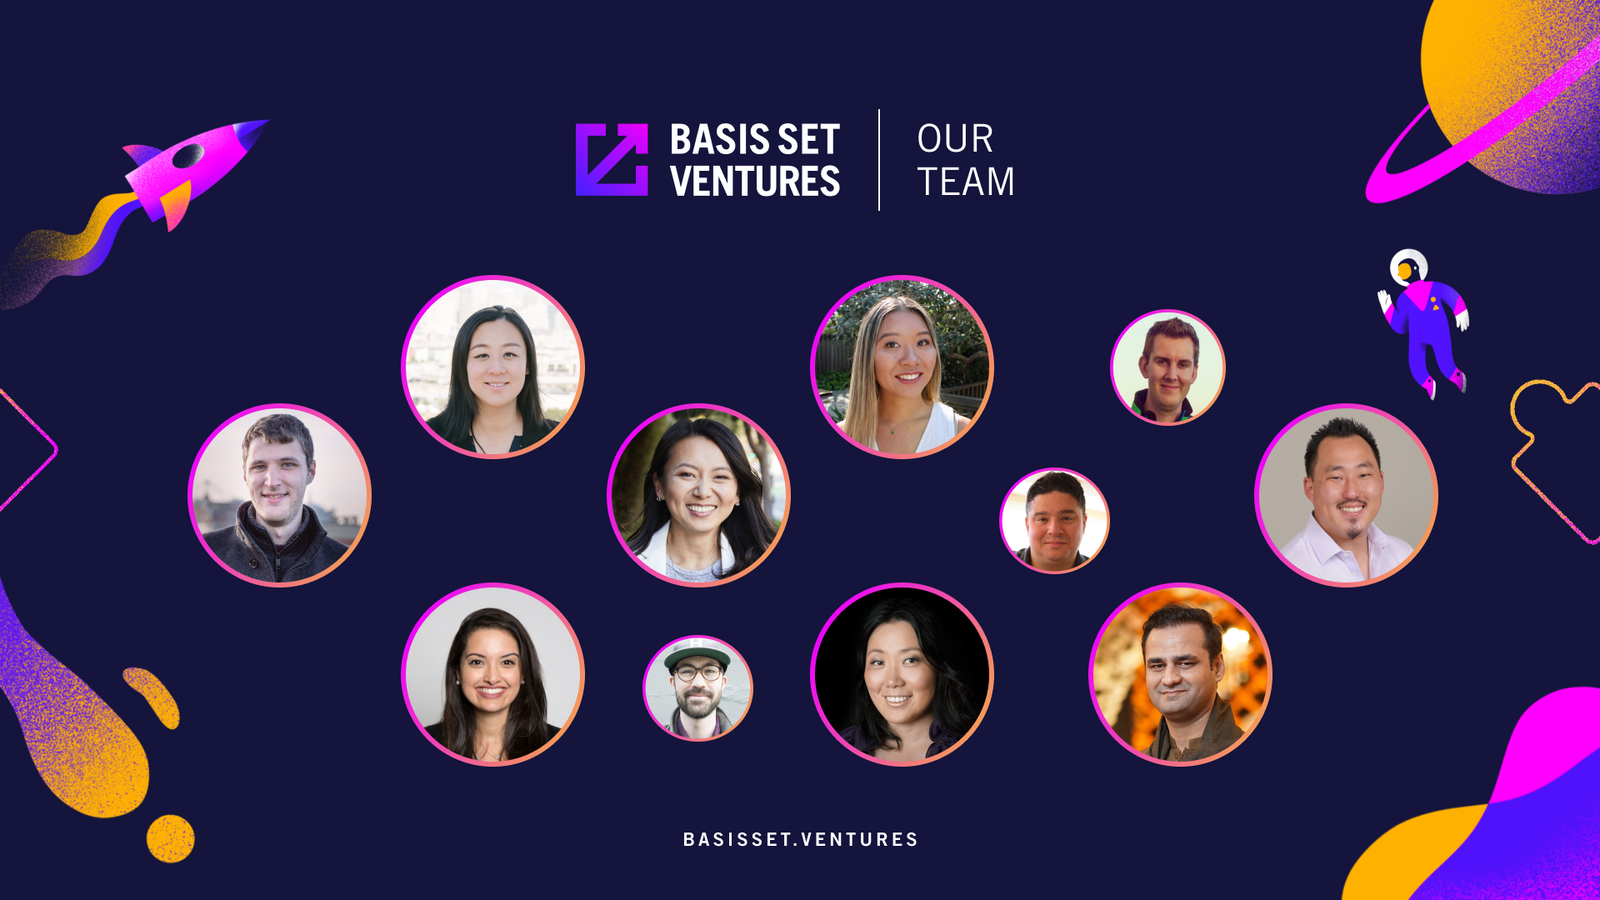 At Basis Set Ventures, merging venture capital and software development yields a $165 million new fund